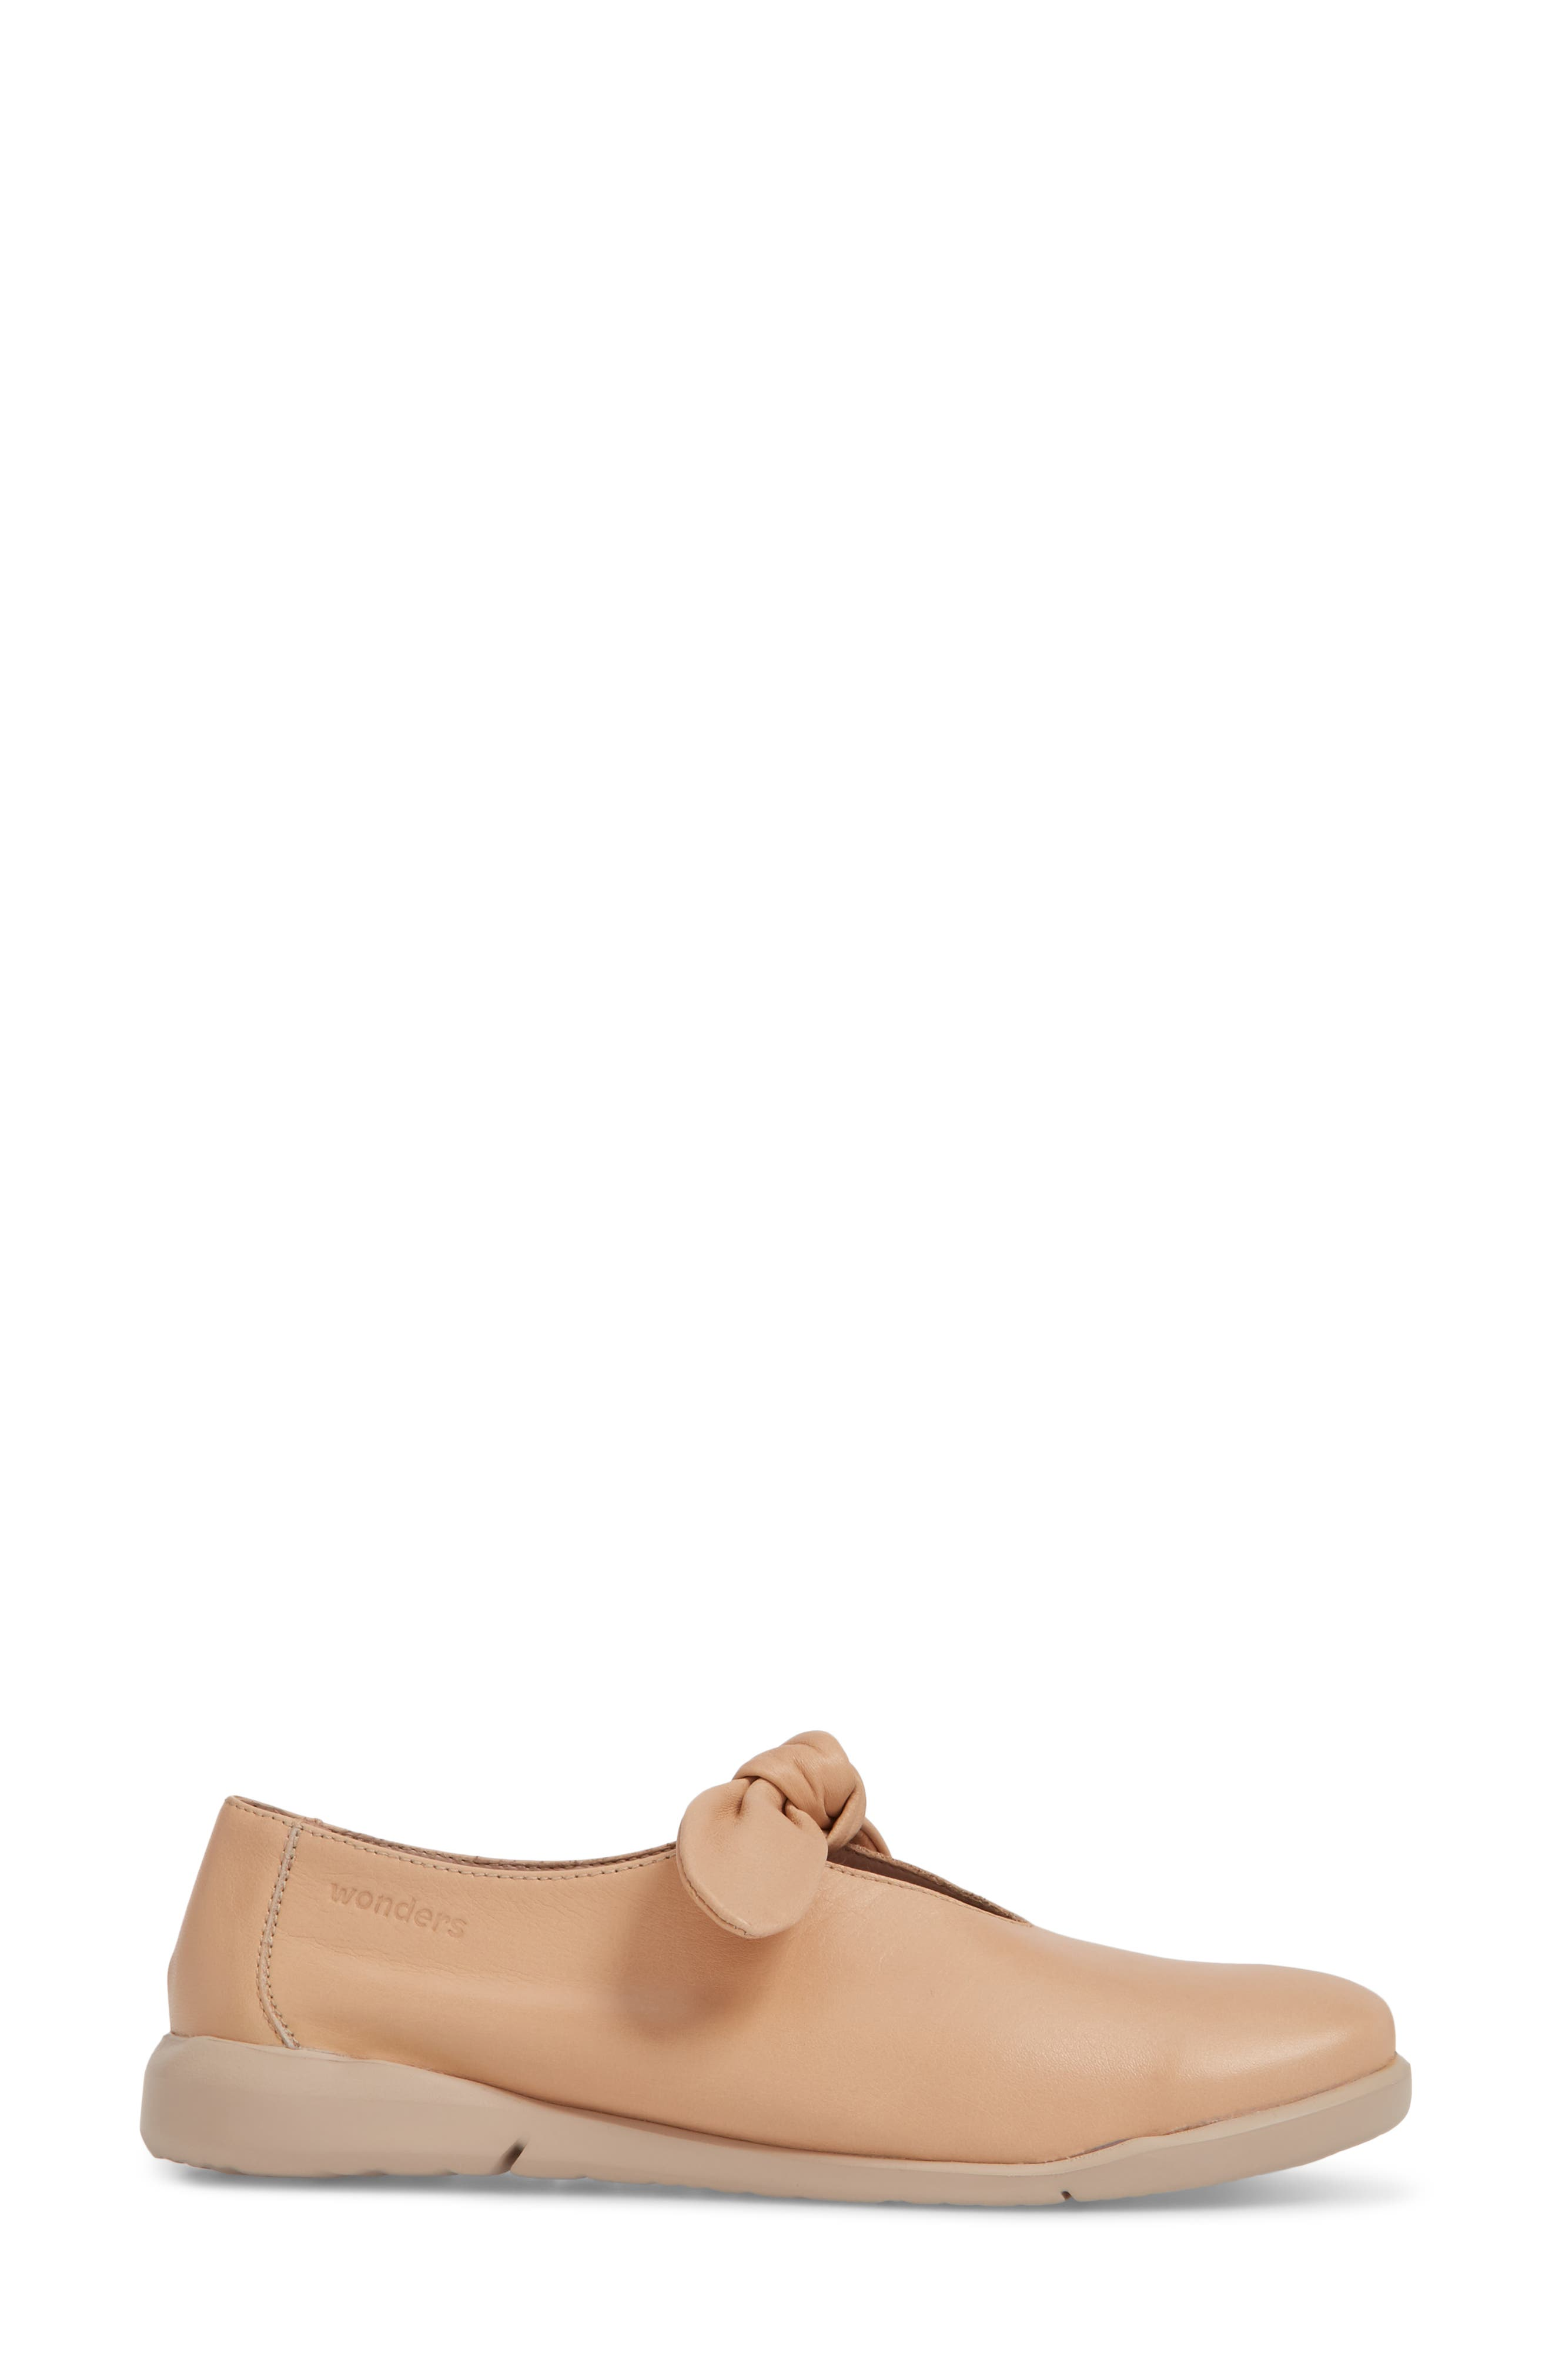 Knotted Mary Jane Flat,                             Alternate thumbnail 3, color,                             PALO BEIGE LEATHER